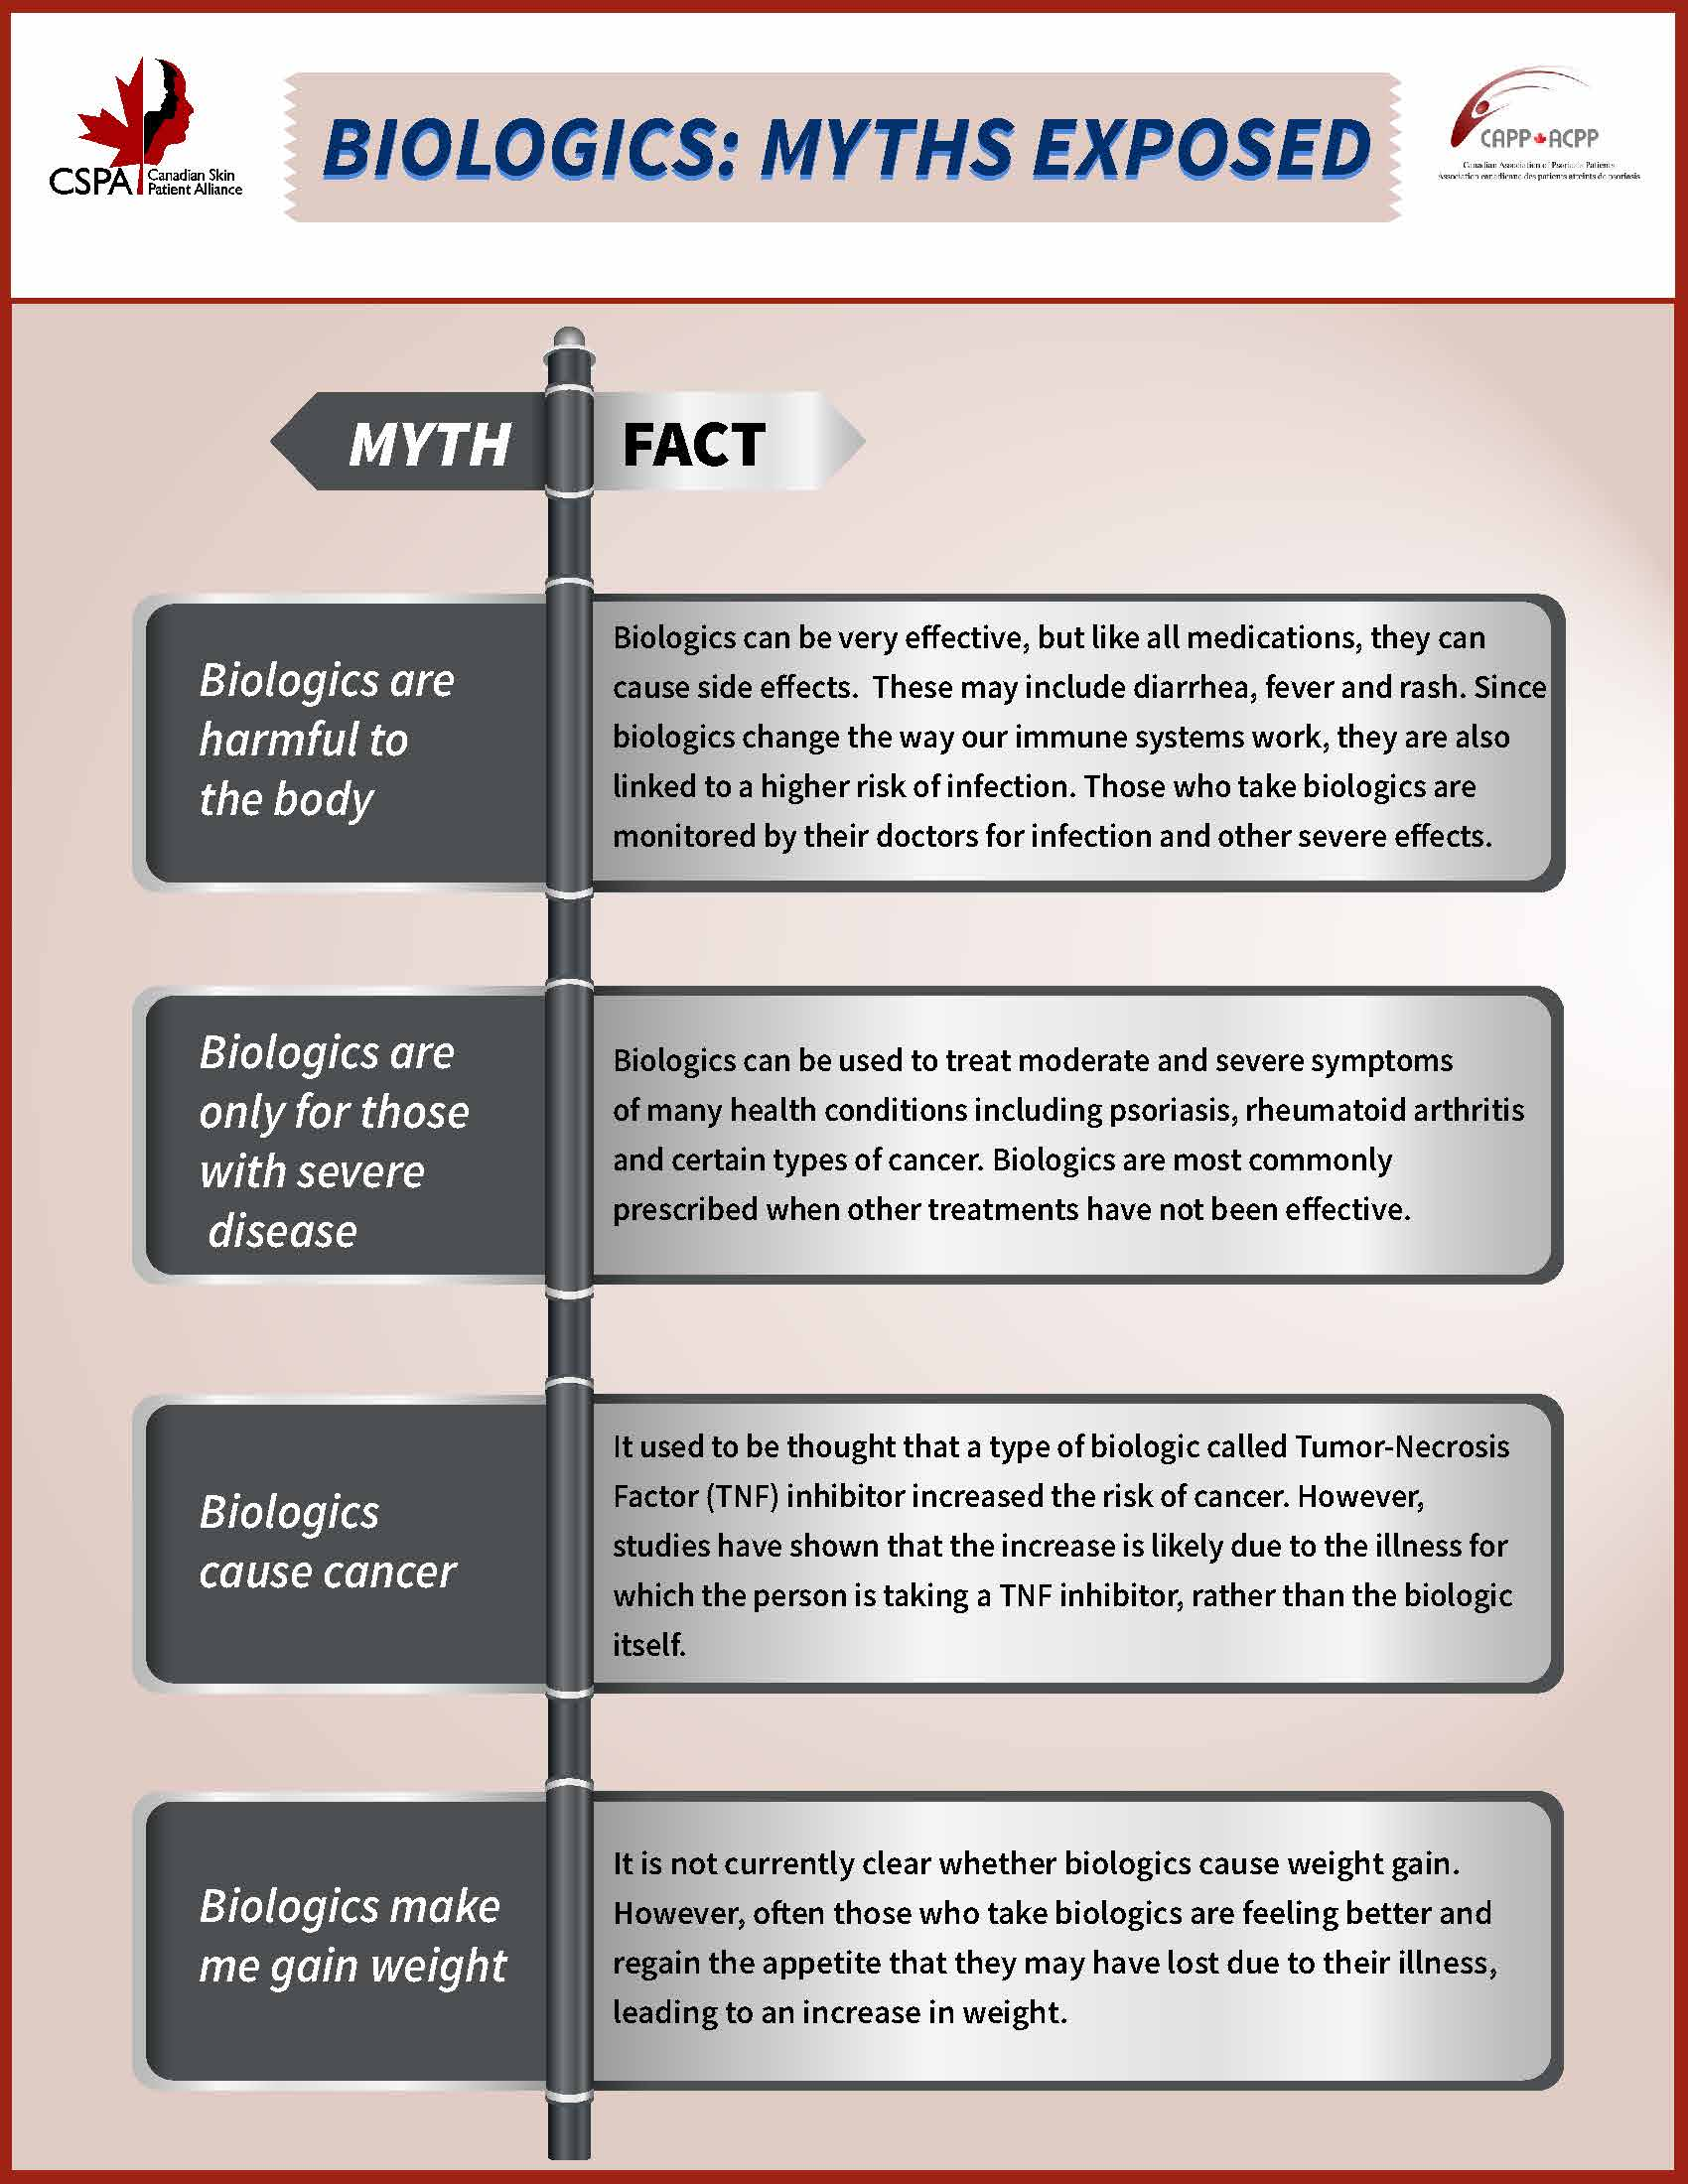 biologics Oct 18 2018 myths 1